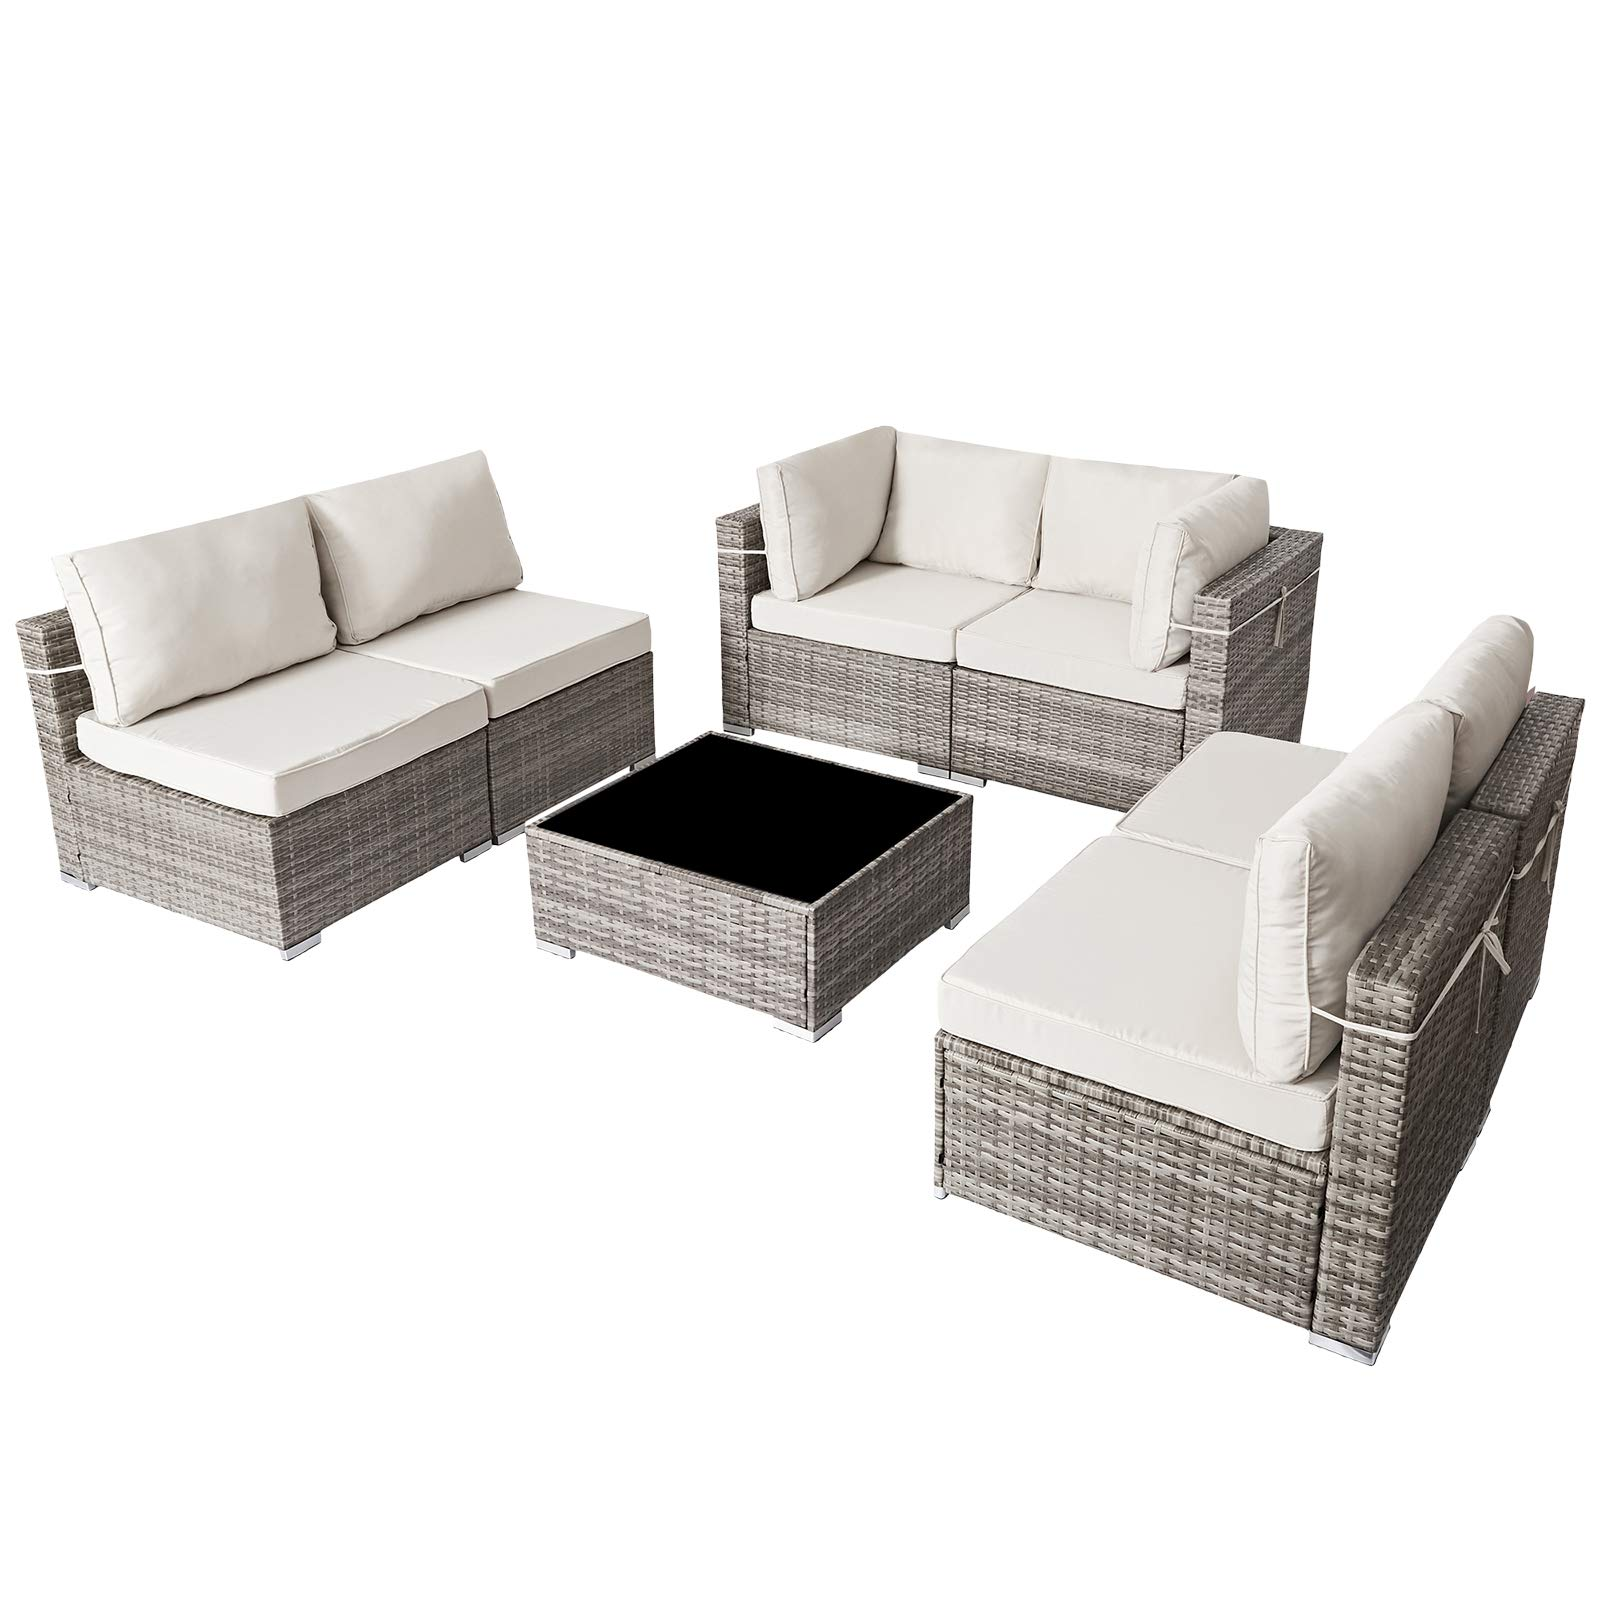 Patio Furniture Corner Sofa Outdoor Loveseat Brown 2 Piece Wicker Rattan Outdoor Sectional Sofa Set with Removable Beige Cushions,Extra Chair for SUNVIVI OUTDOOR Furniture